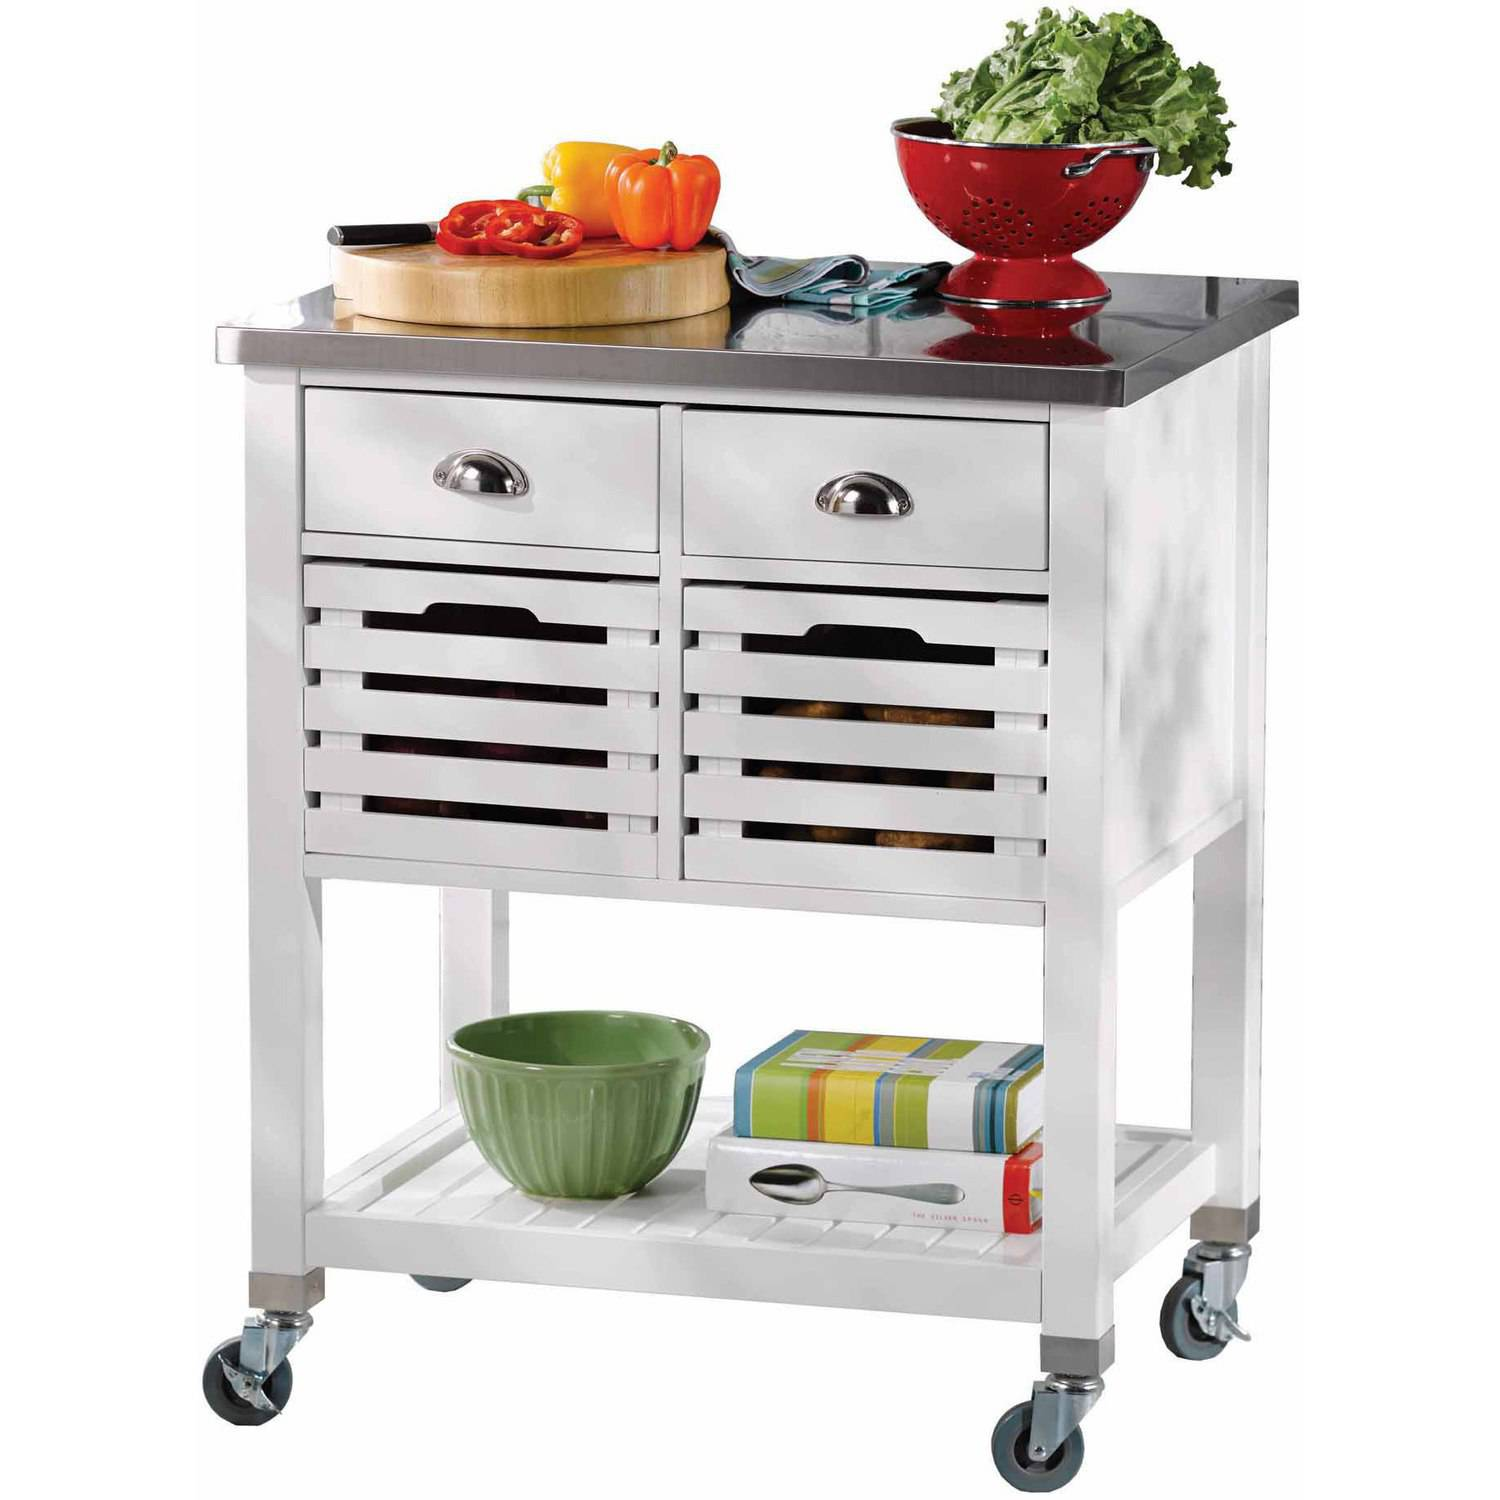 Linon Robbin Wood Kitchen Cart with Stainless Steel Top 36 inches